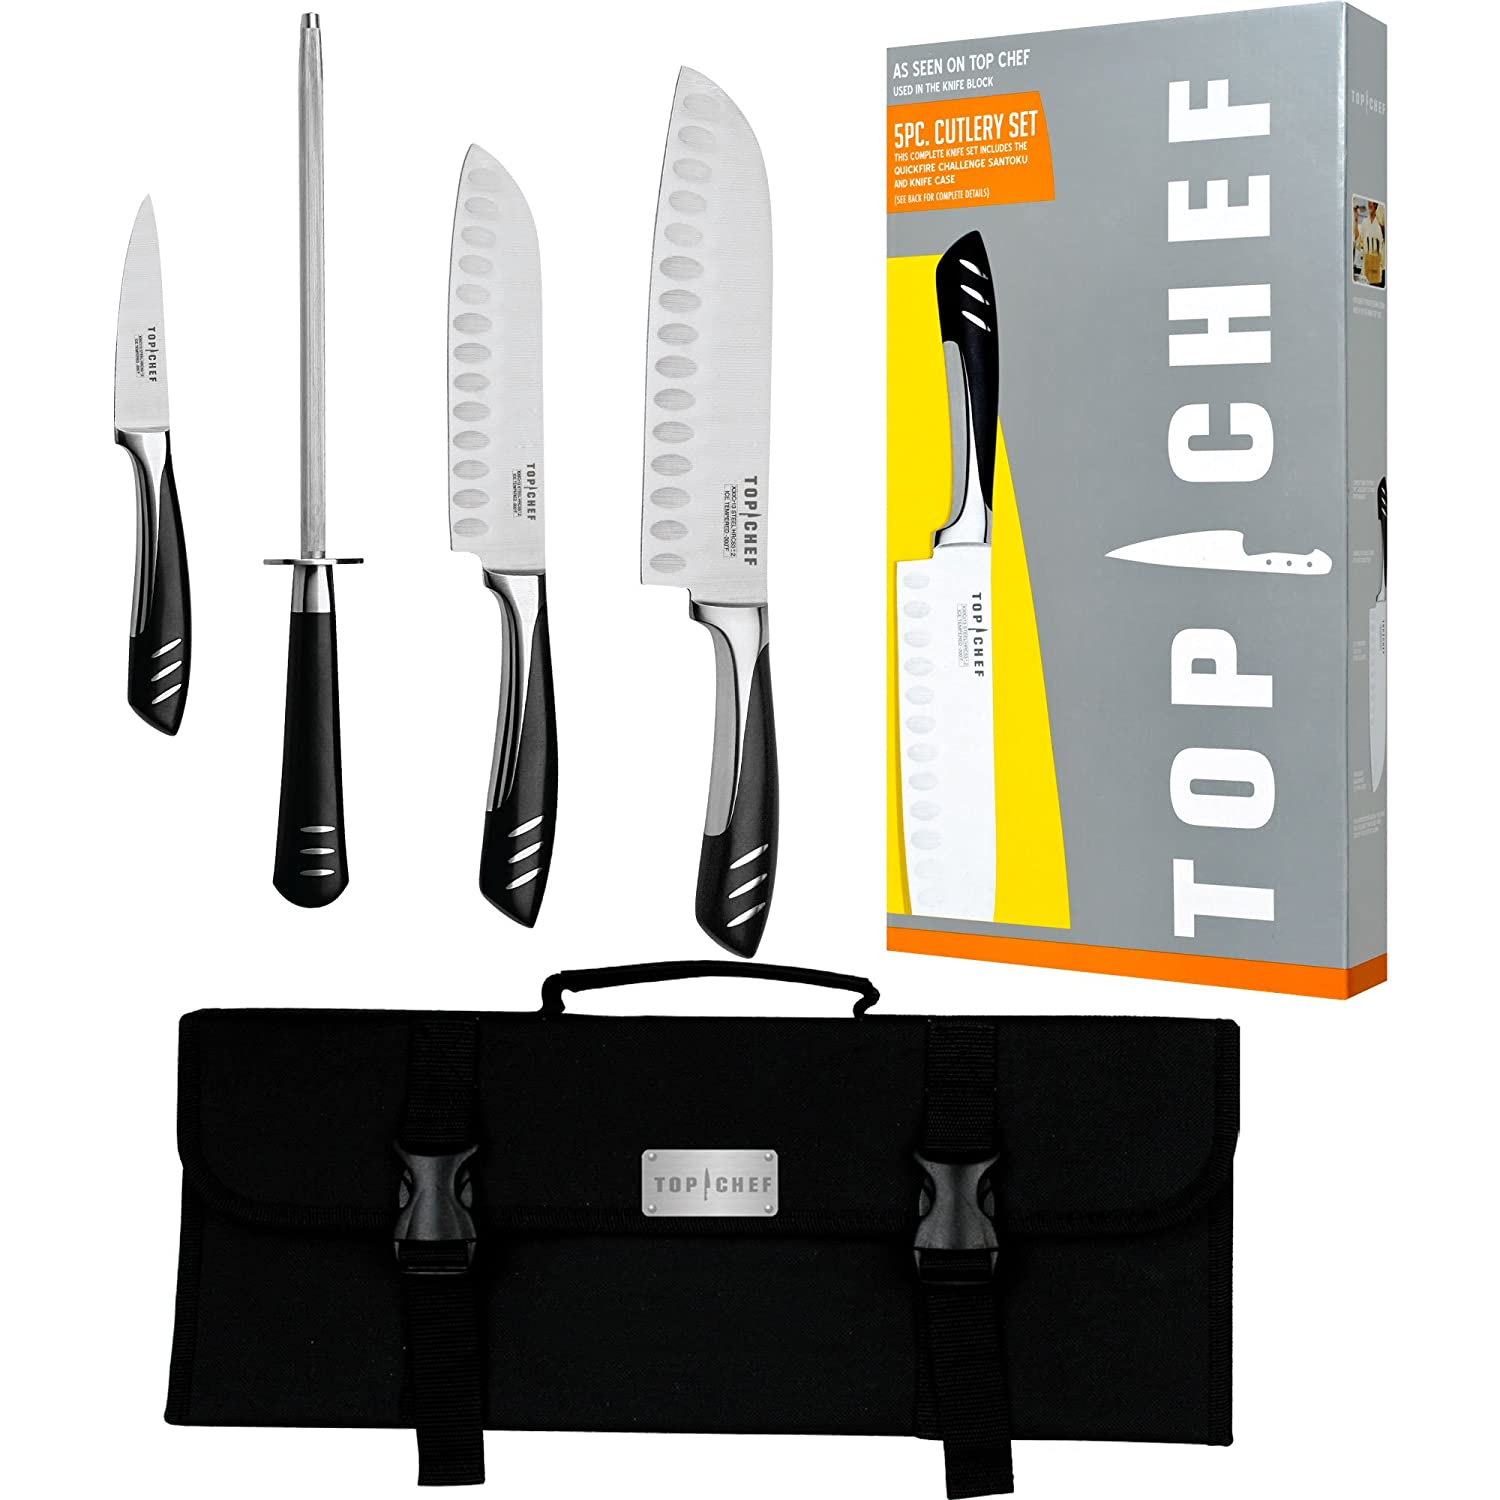 Top Chef 5-Piece Stainless Steel Knife Set, Portable